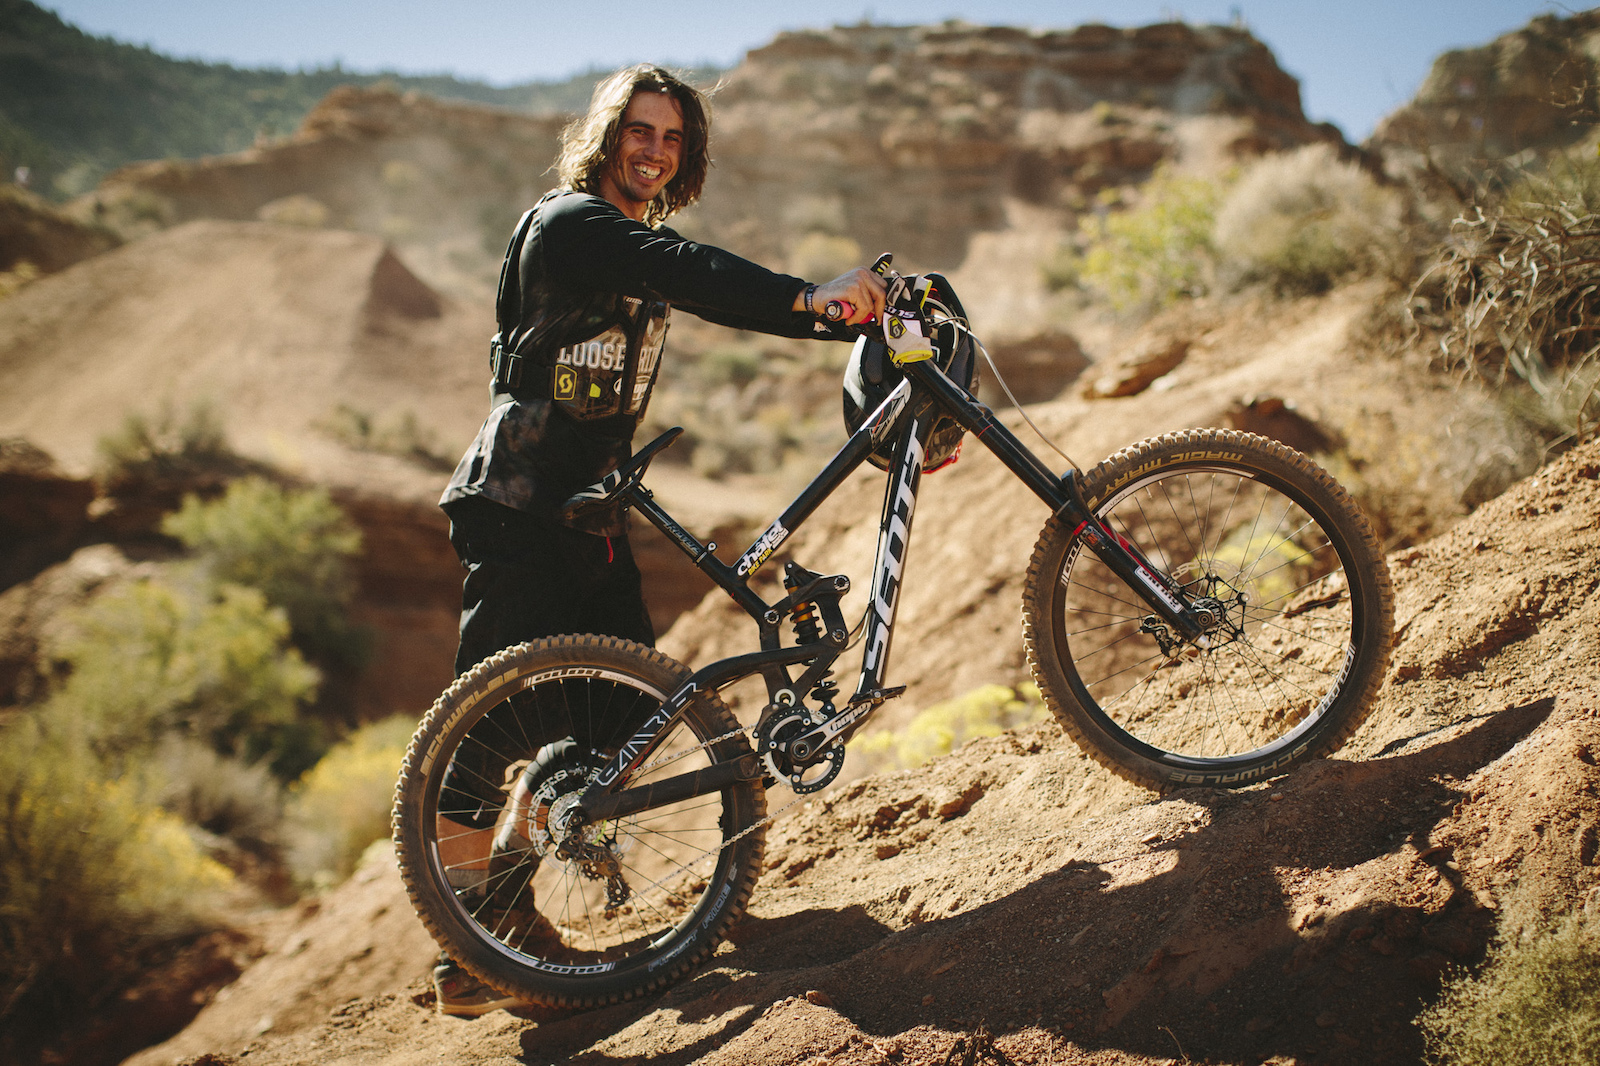 Nico Vink at RedBull Rampage 2015 Virgin Utah USA